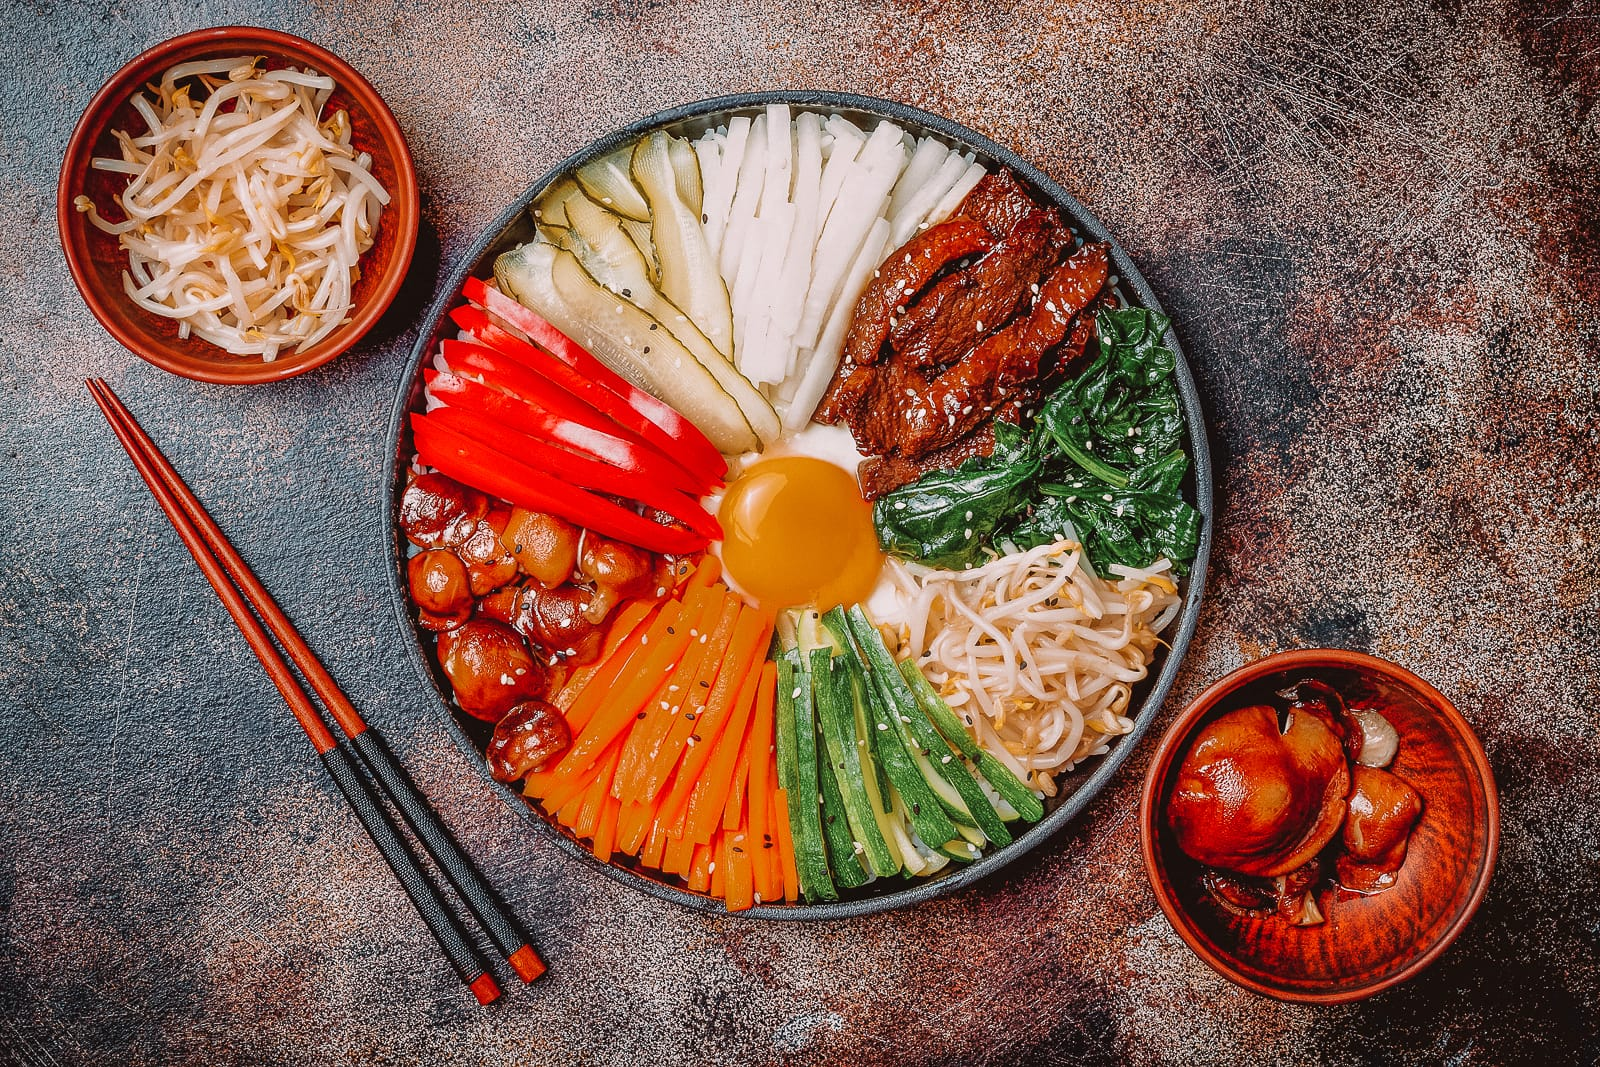 Foods to try in South Korea